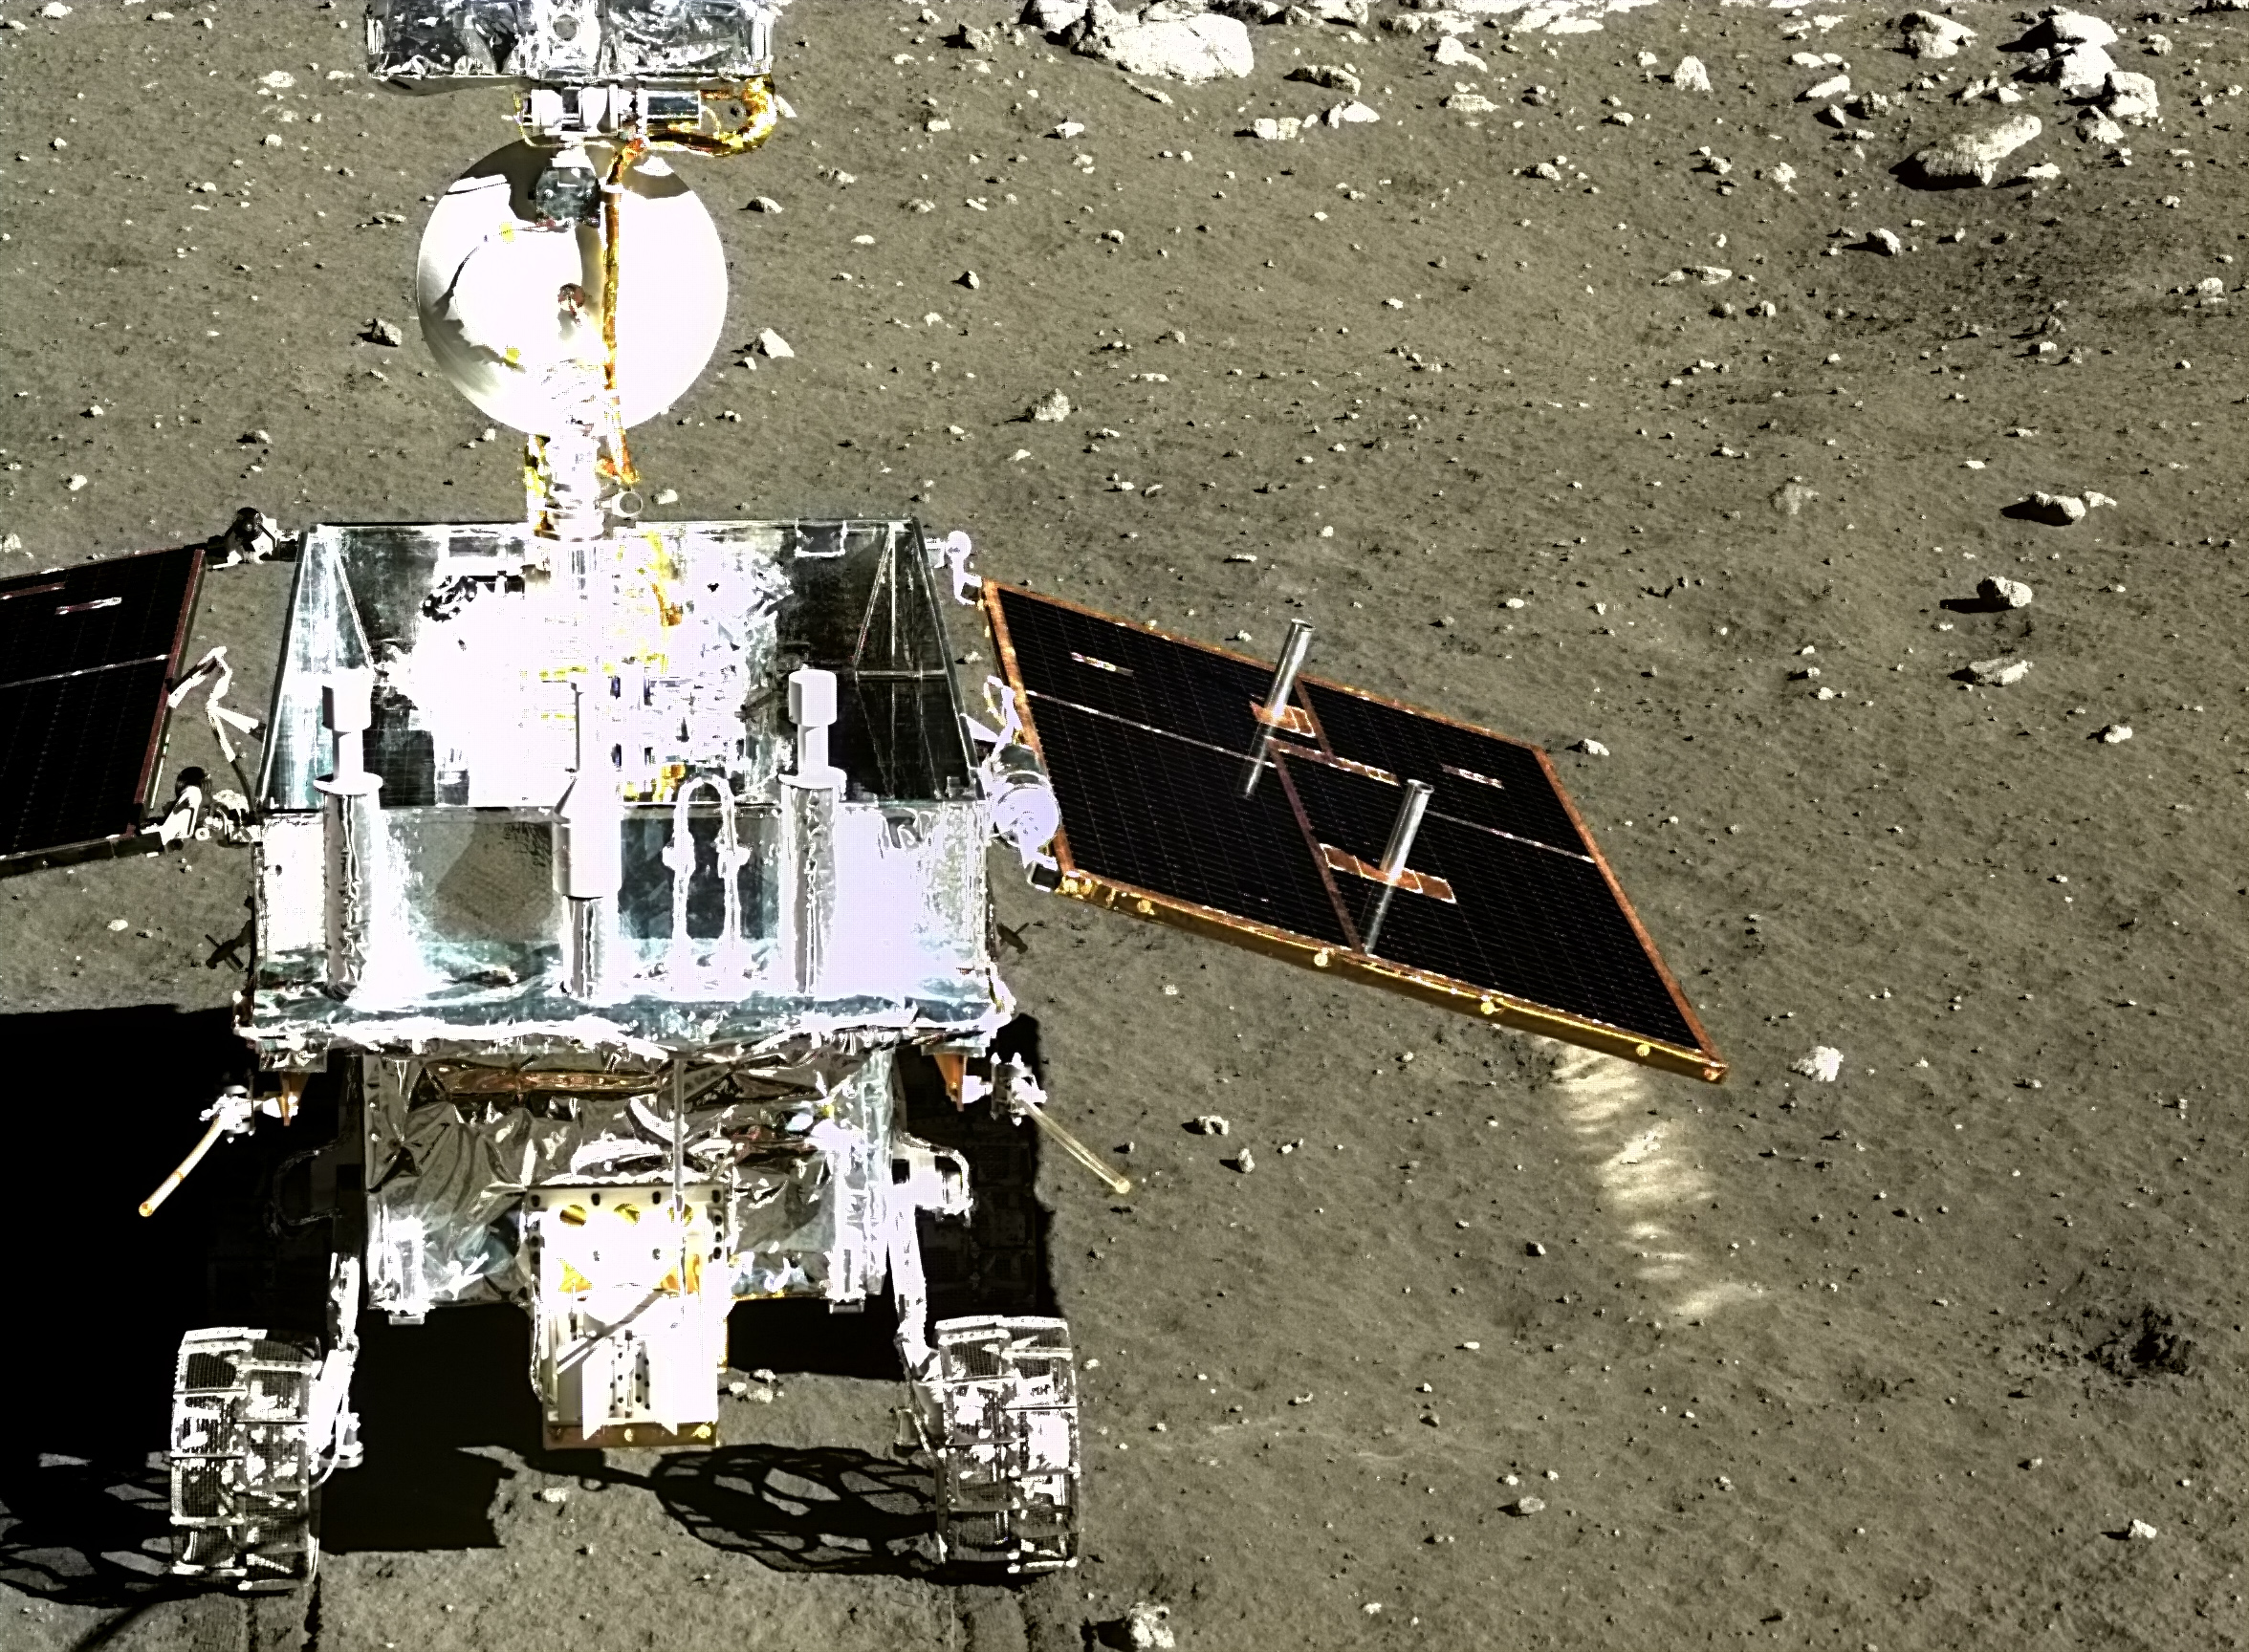 Chang'e 3 and Yutu images of the Moon